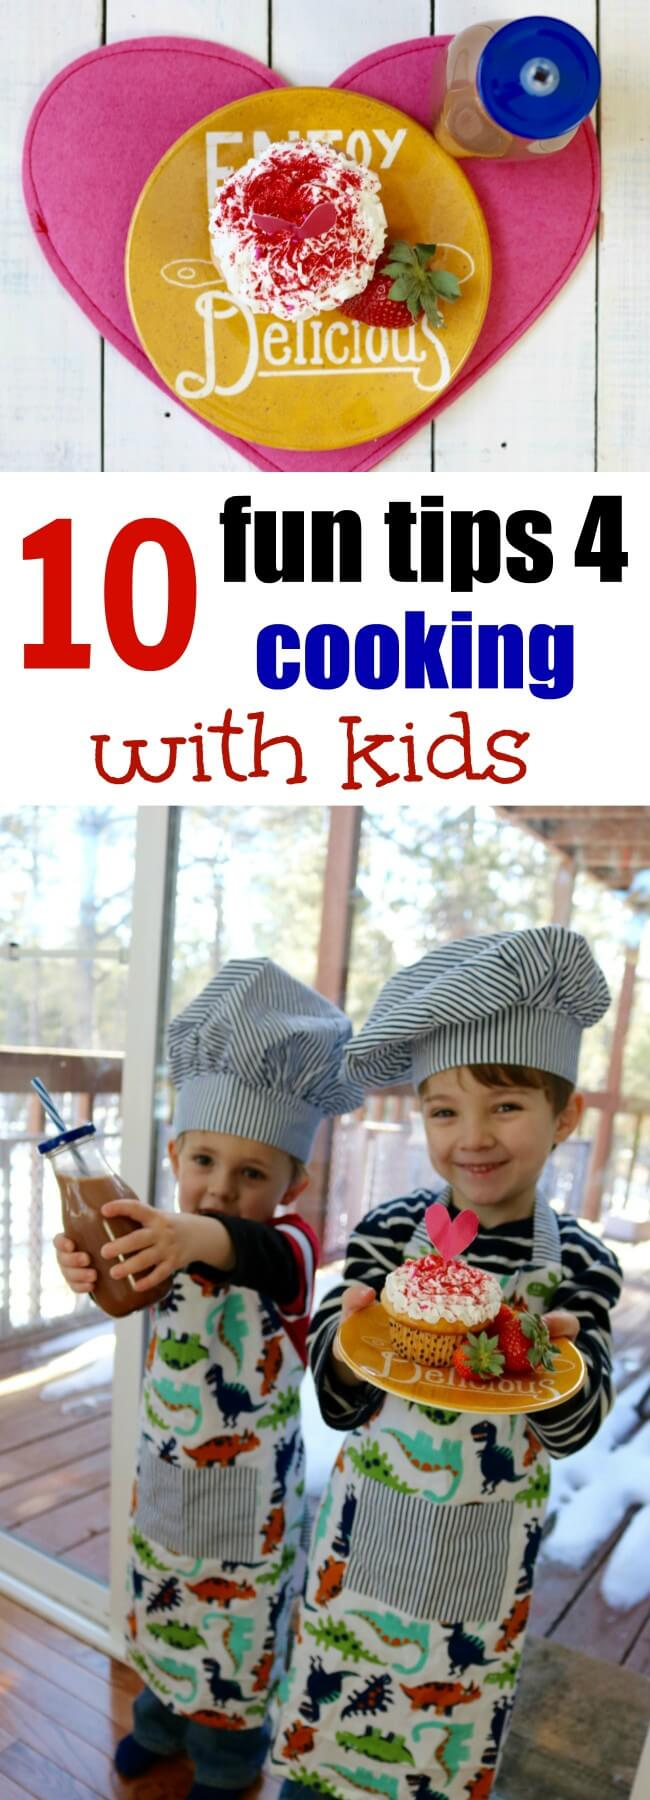 Number 5 is so true - I love this post on 10 fun tips for cooking with kids